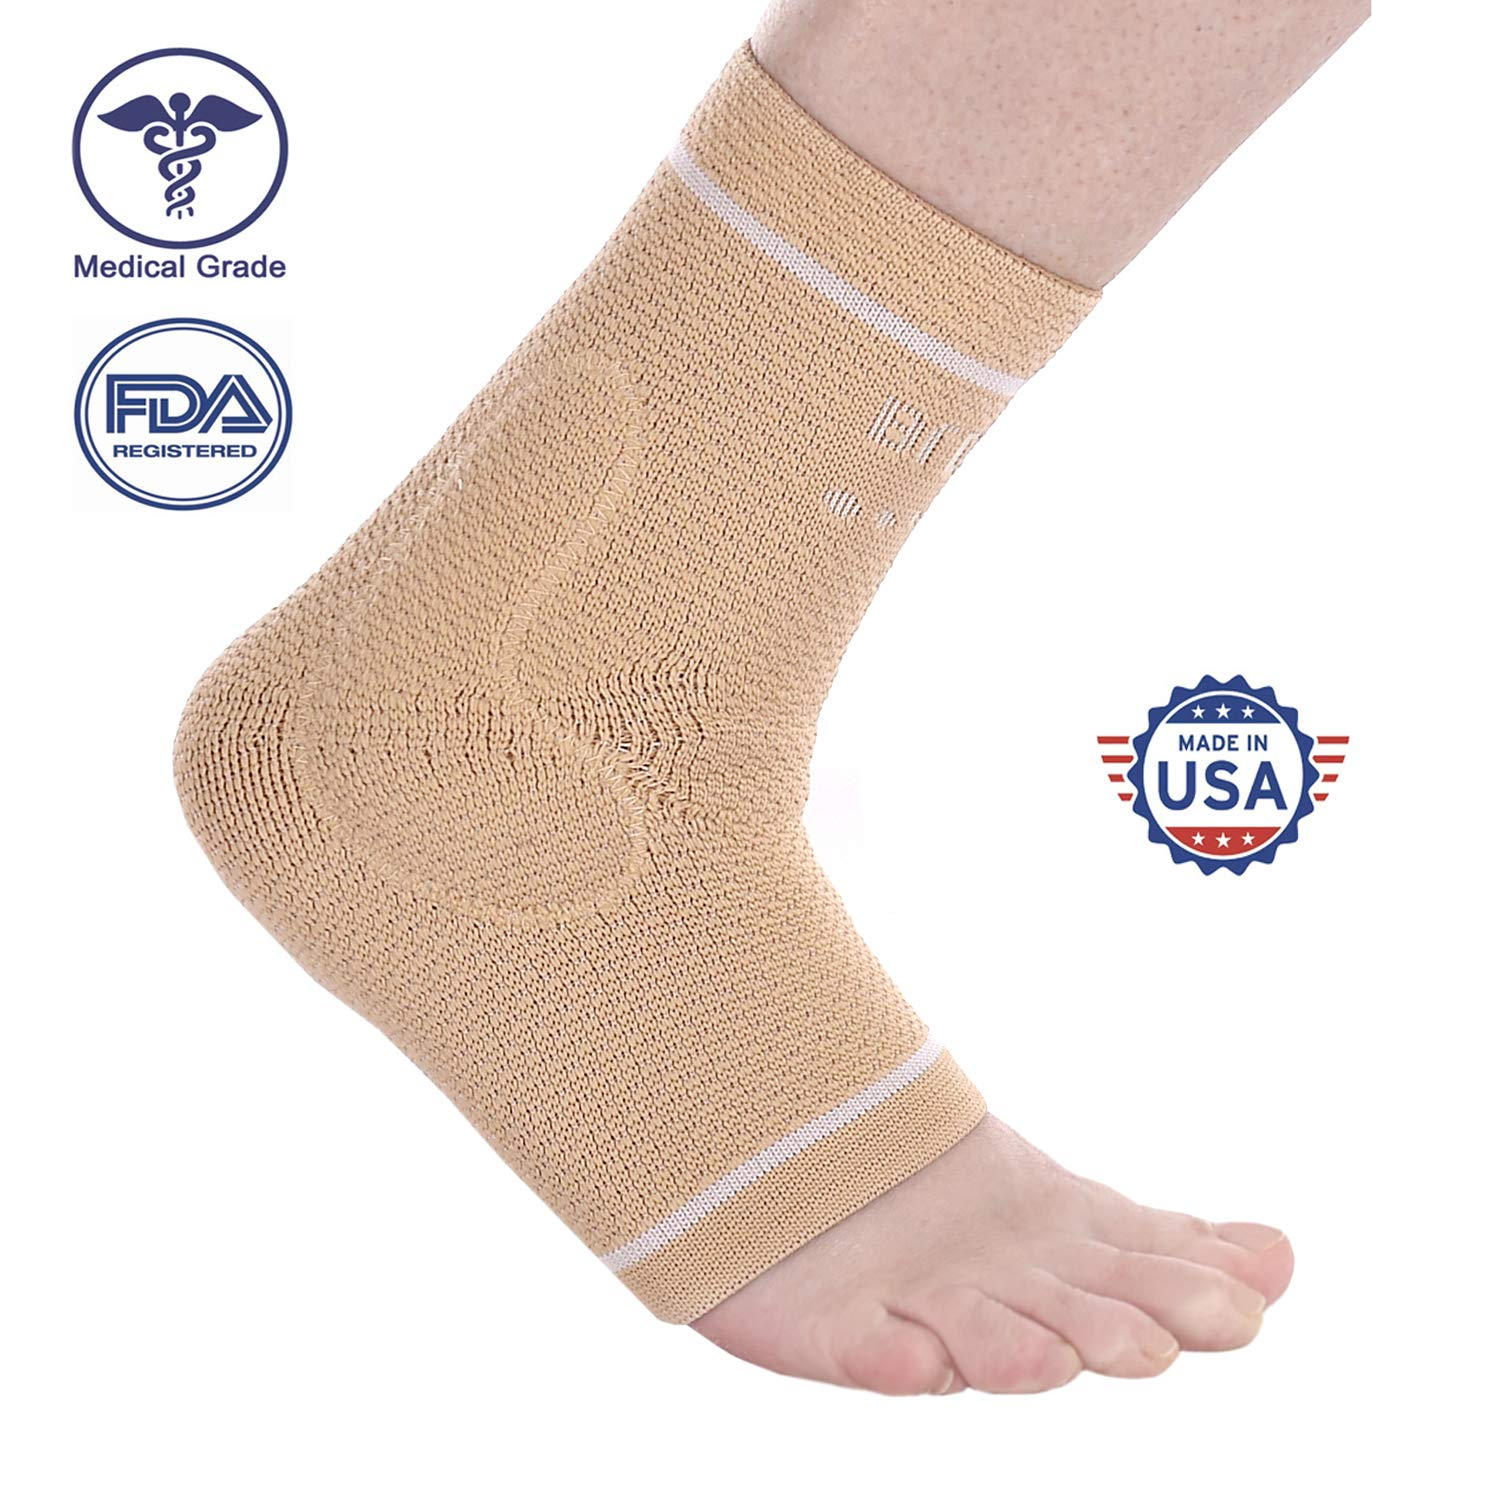 BRD Sport Compression Ankle Brace FDA Registered Brace Offers Targeted Compression for Ankle Pain, Swelling and Sprain, A Perfect Ankle Support (Beige with White Accent Stripe, S [7 1/2''-8 1/4''])